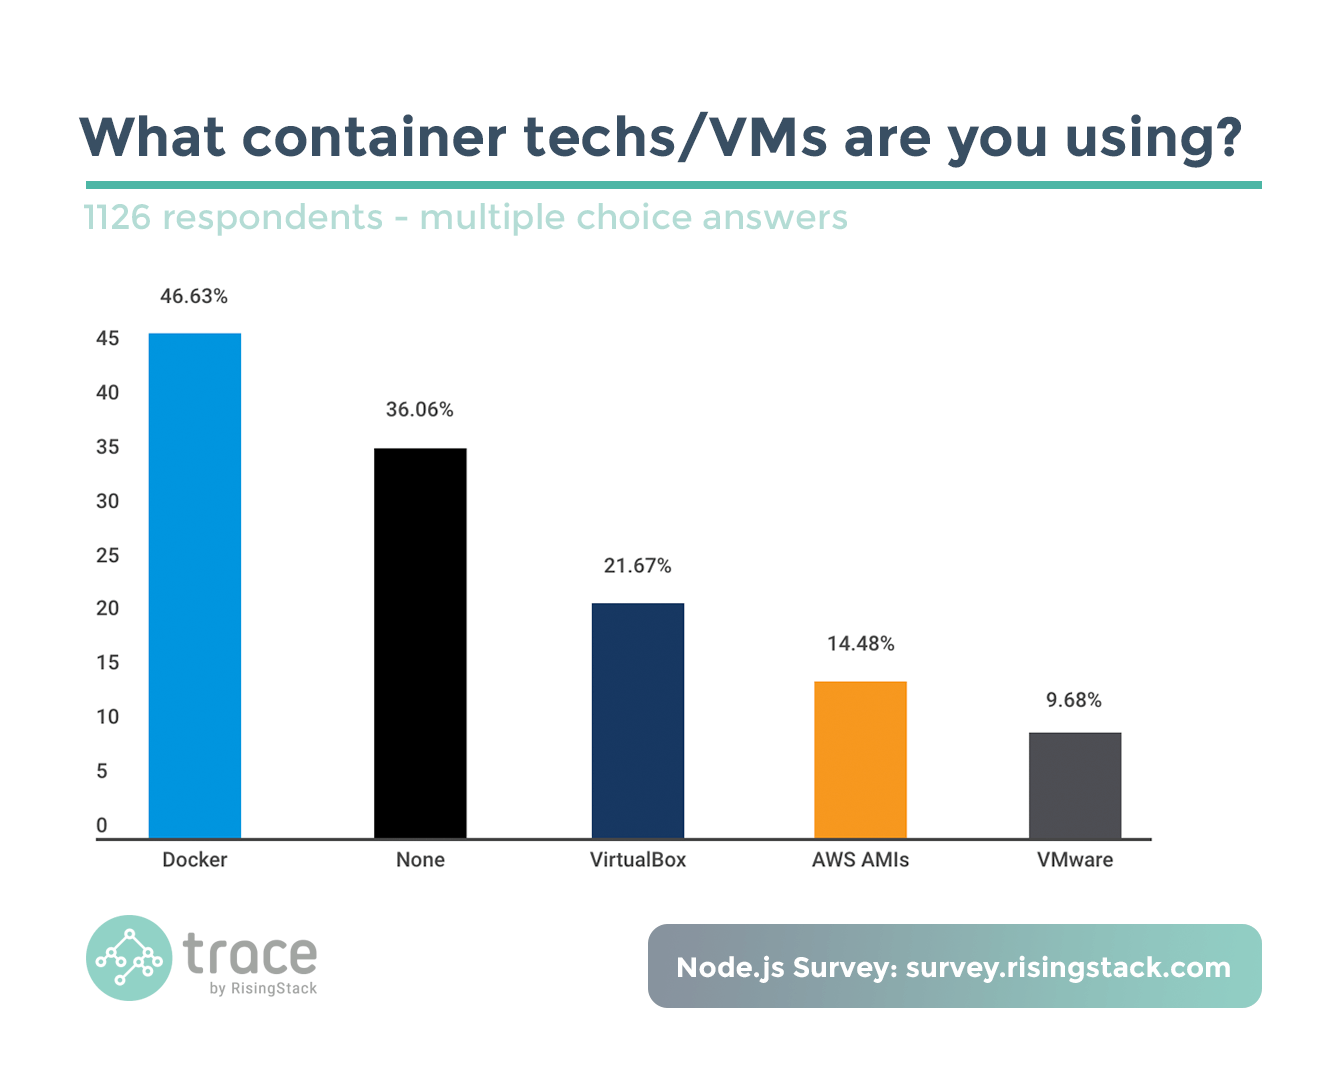 Node.js Survey - What container techs or VMs are you using? Docker.